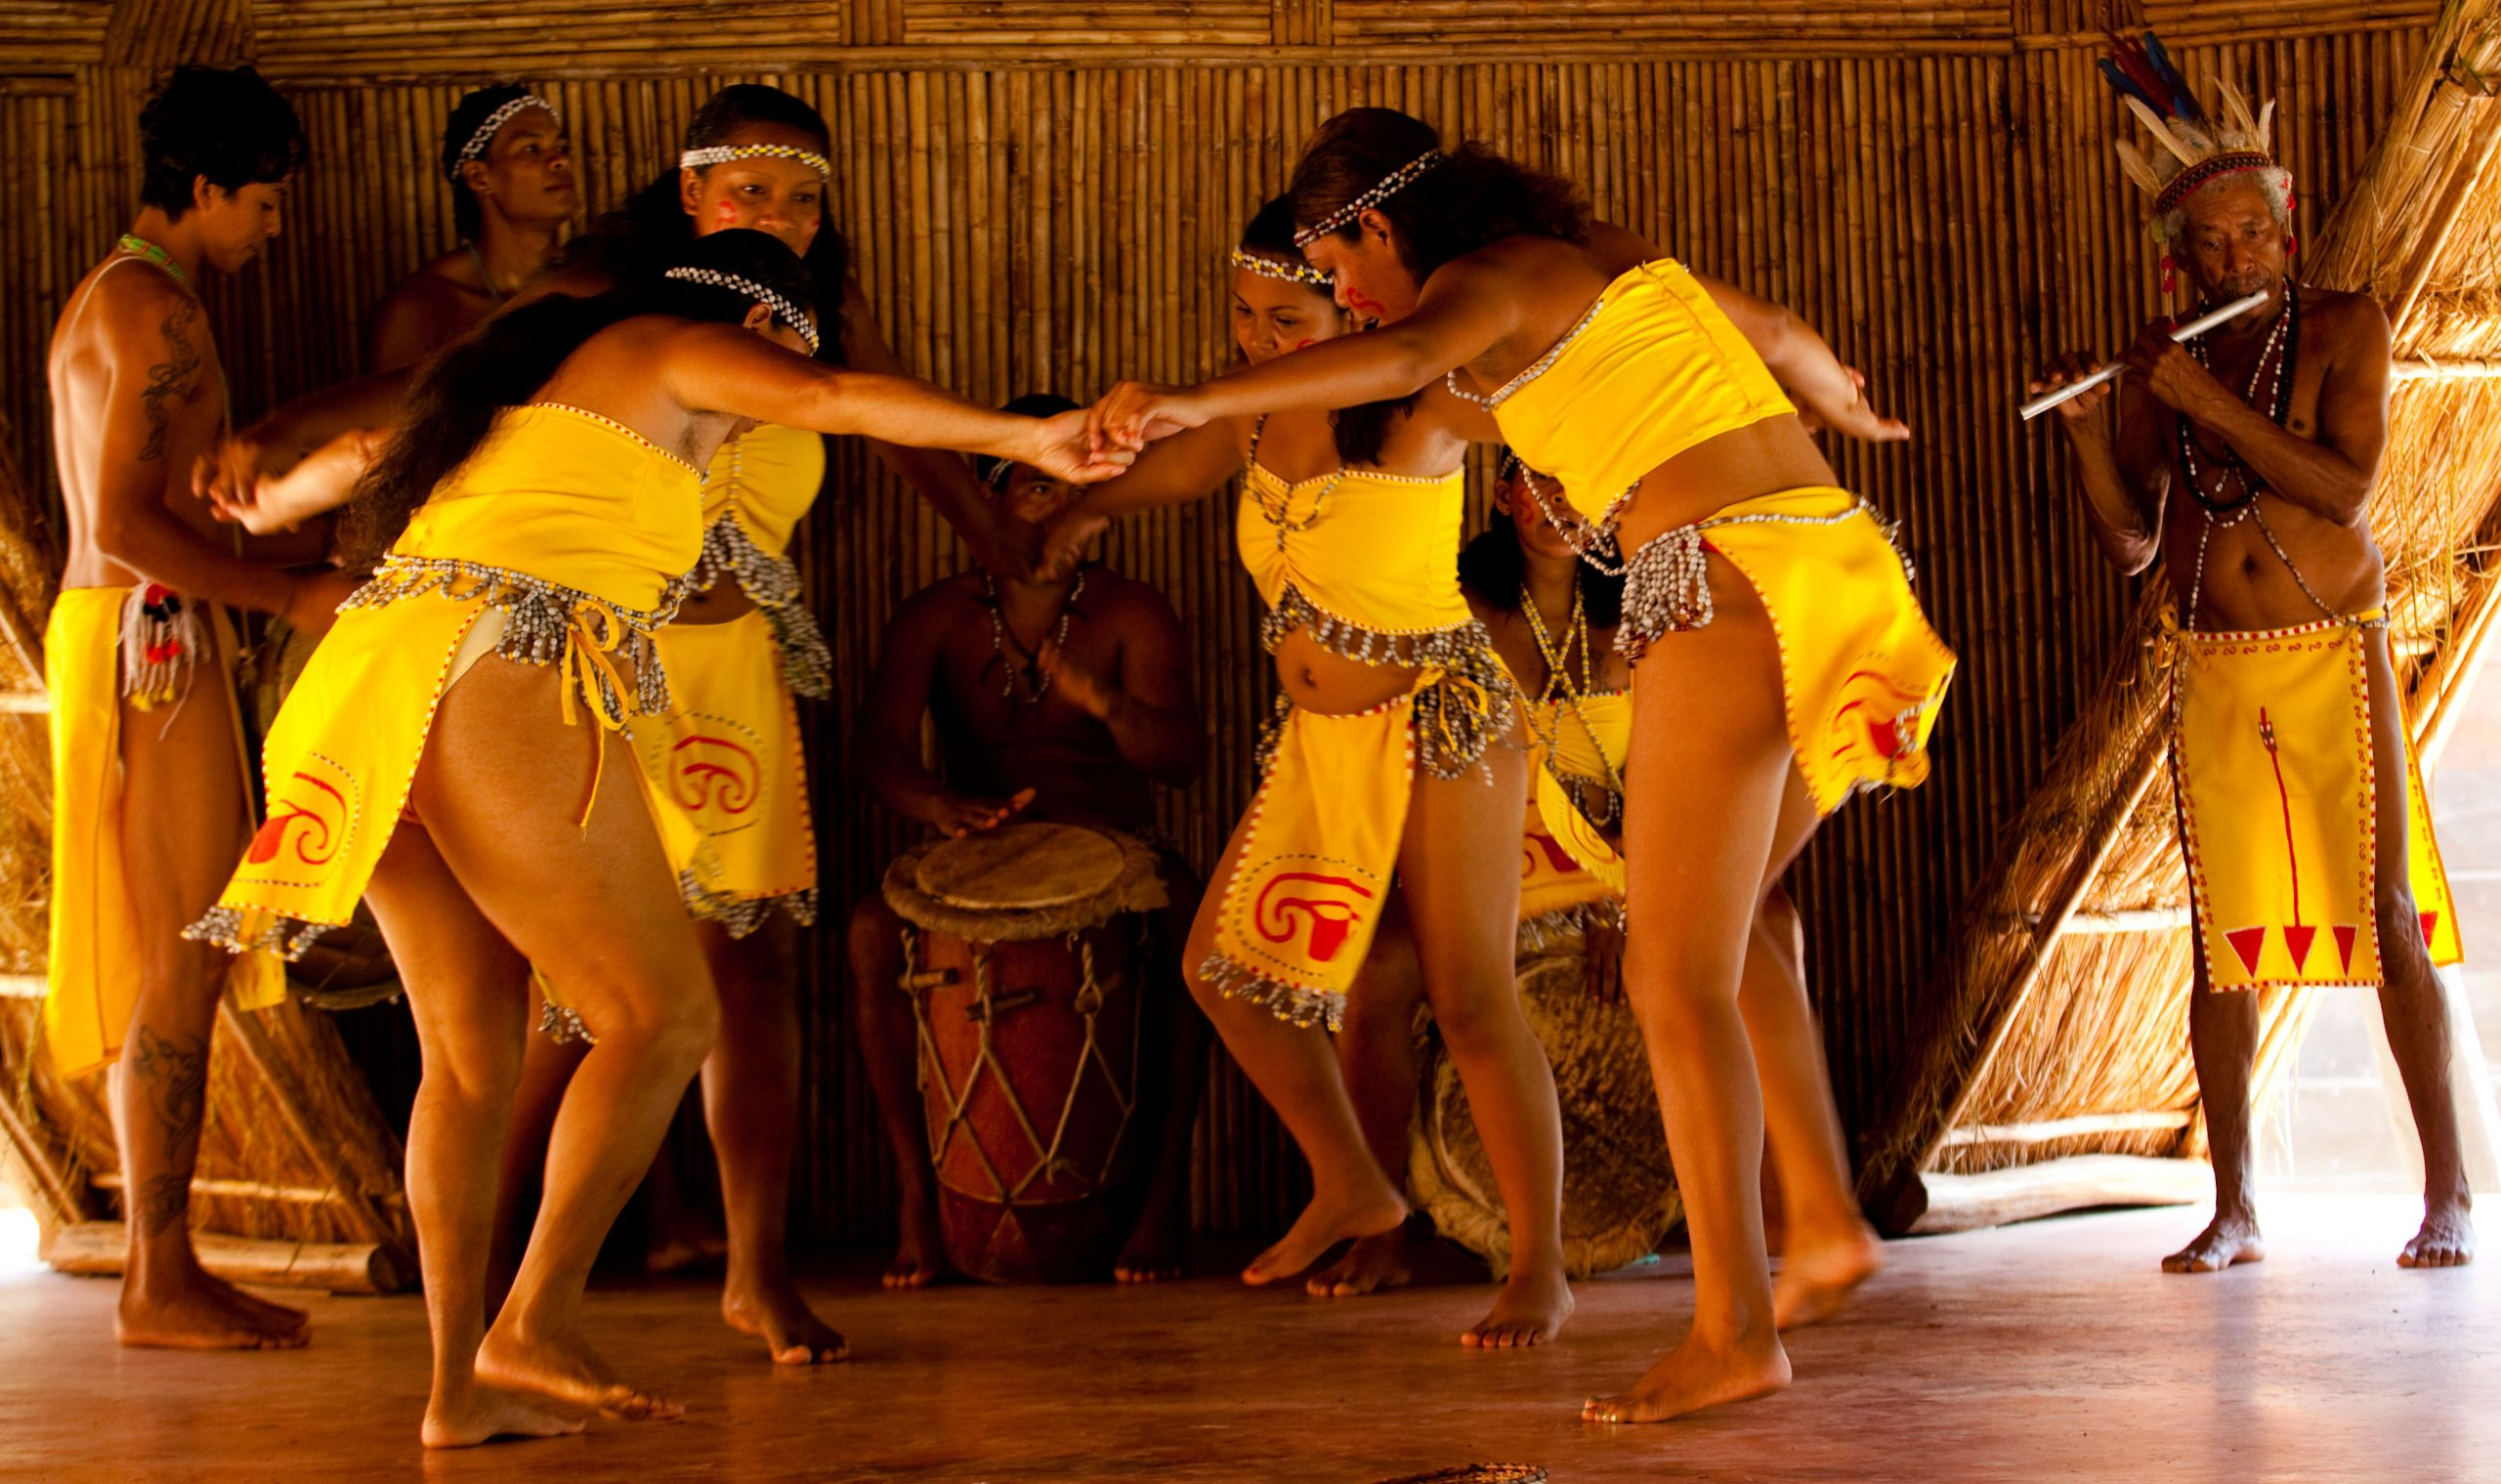 A Kalinago Dance done by Kalinago ladies in yellow traditional wear